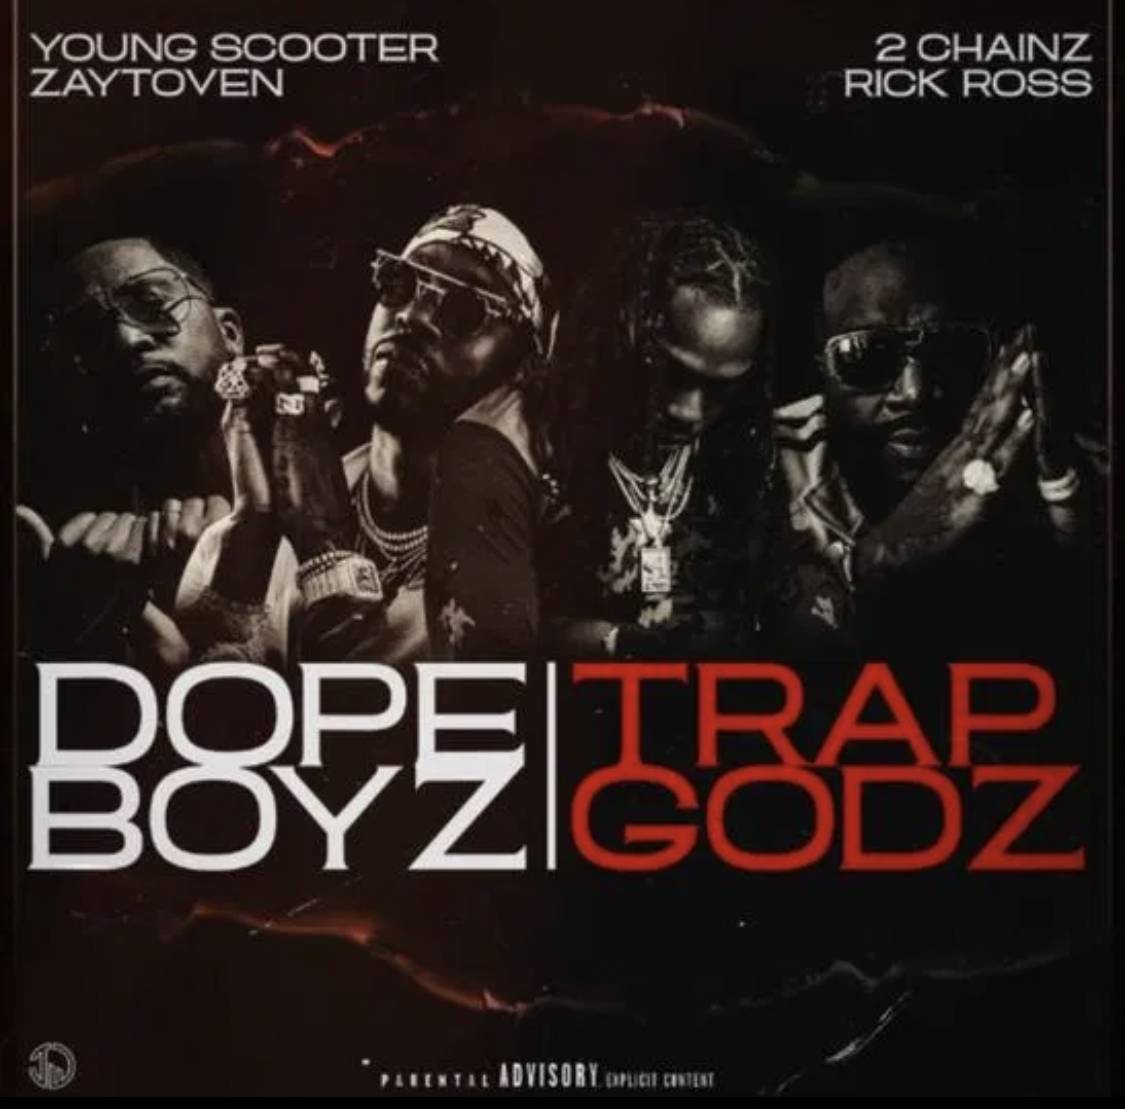 Young Scooter & Zaytoven Ft. 2 Chainz & Rick Ross - Dope Boyz & Trap Godz